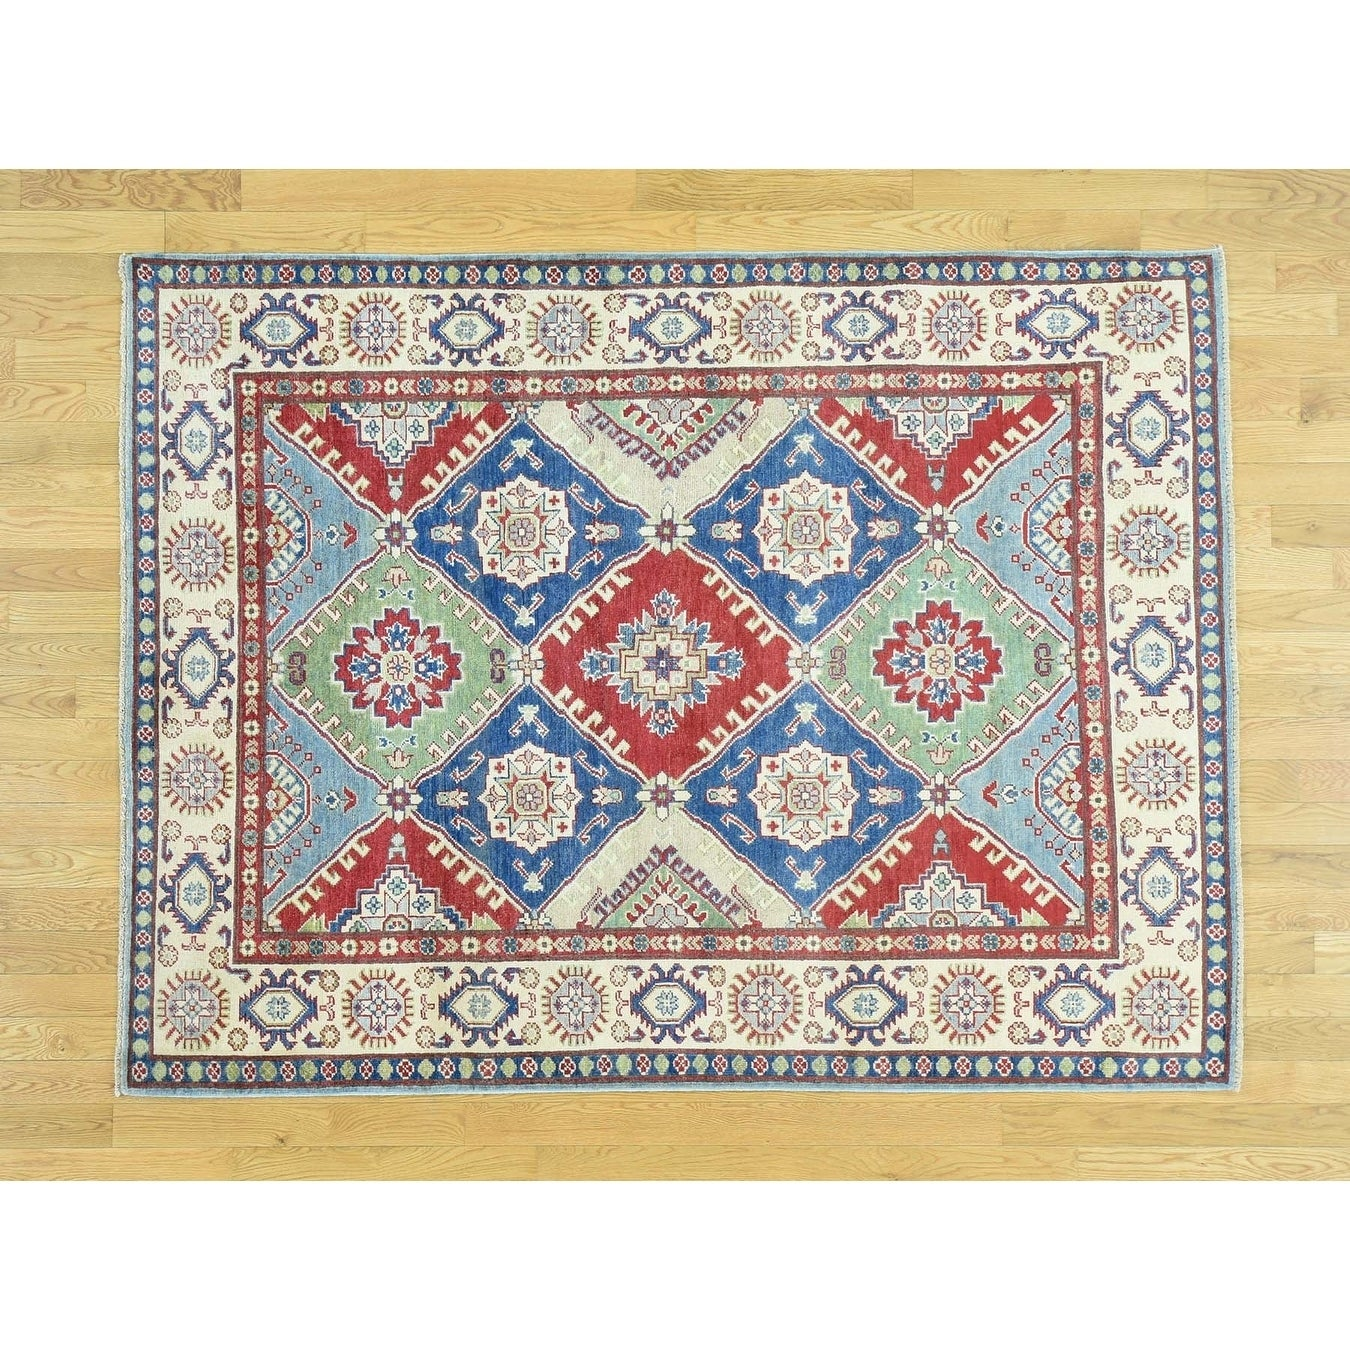 Hand Knotted Multicolored Kazak with Wool Oriental Rug - 54 x 71